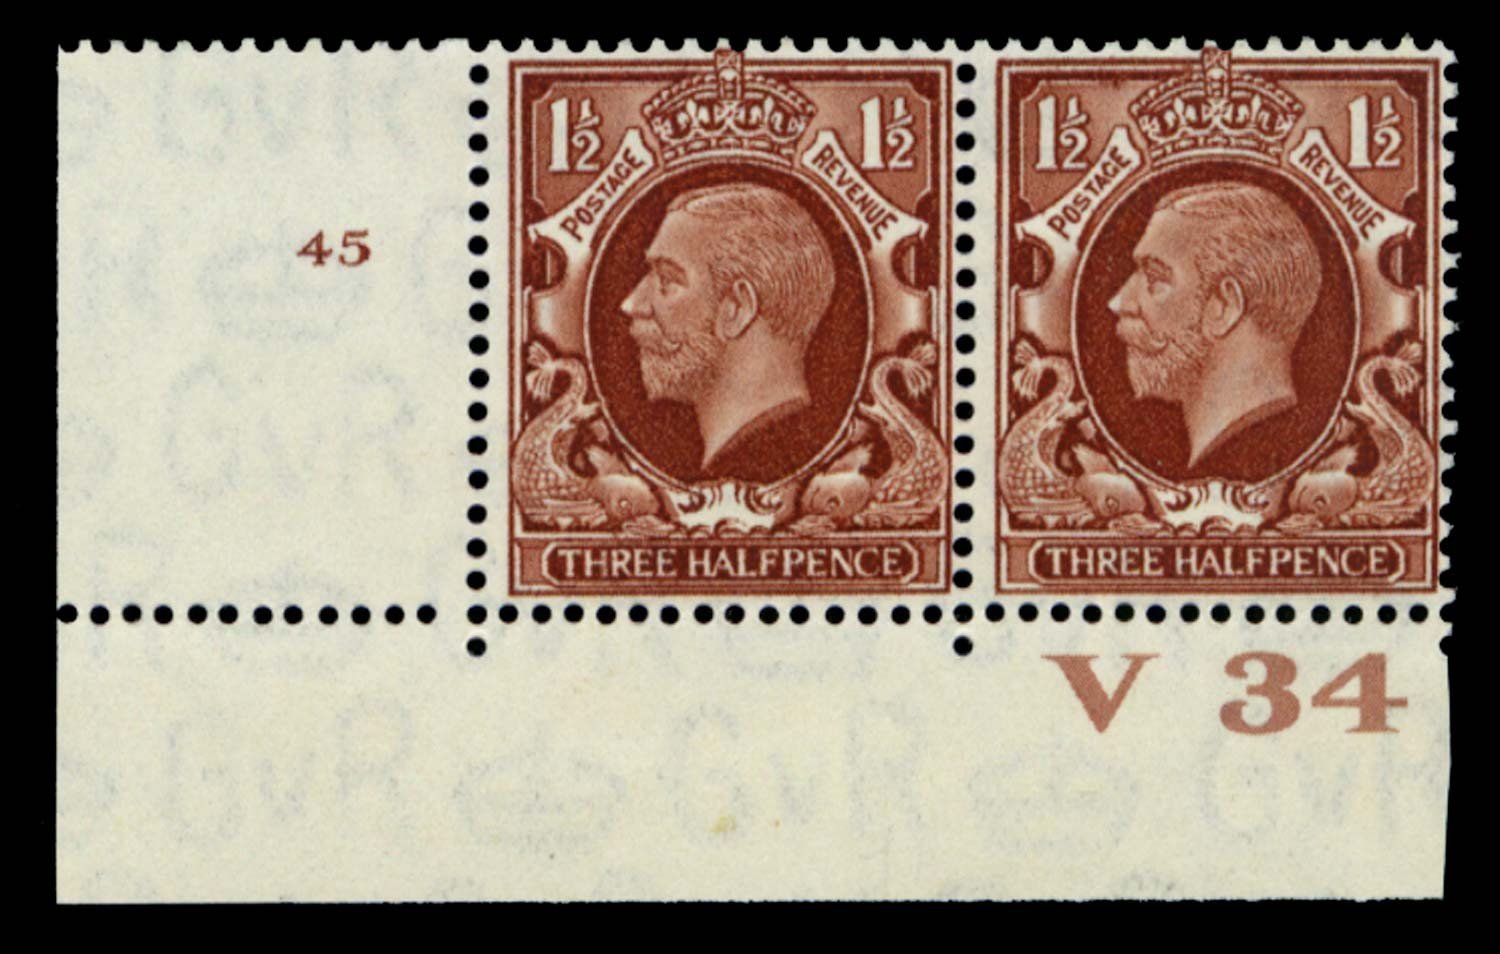 GB 1934  SG441 Mint Control V34, Cyl. 45 (No dot)